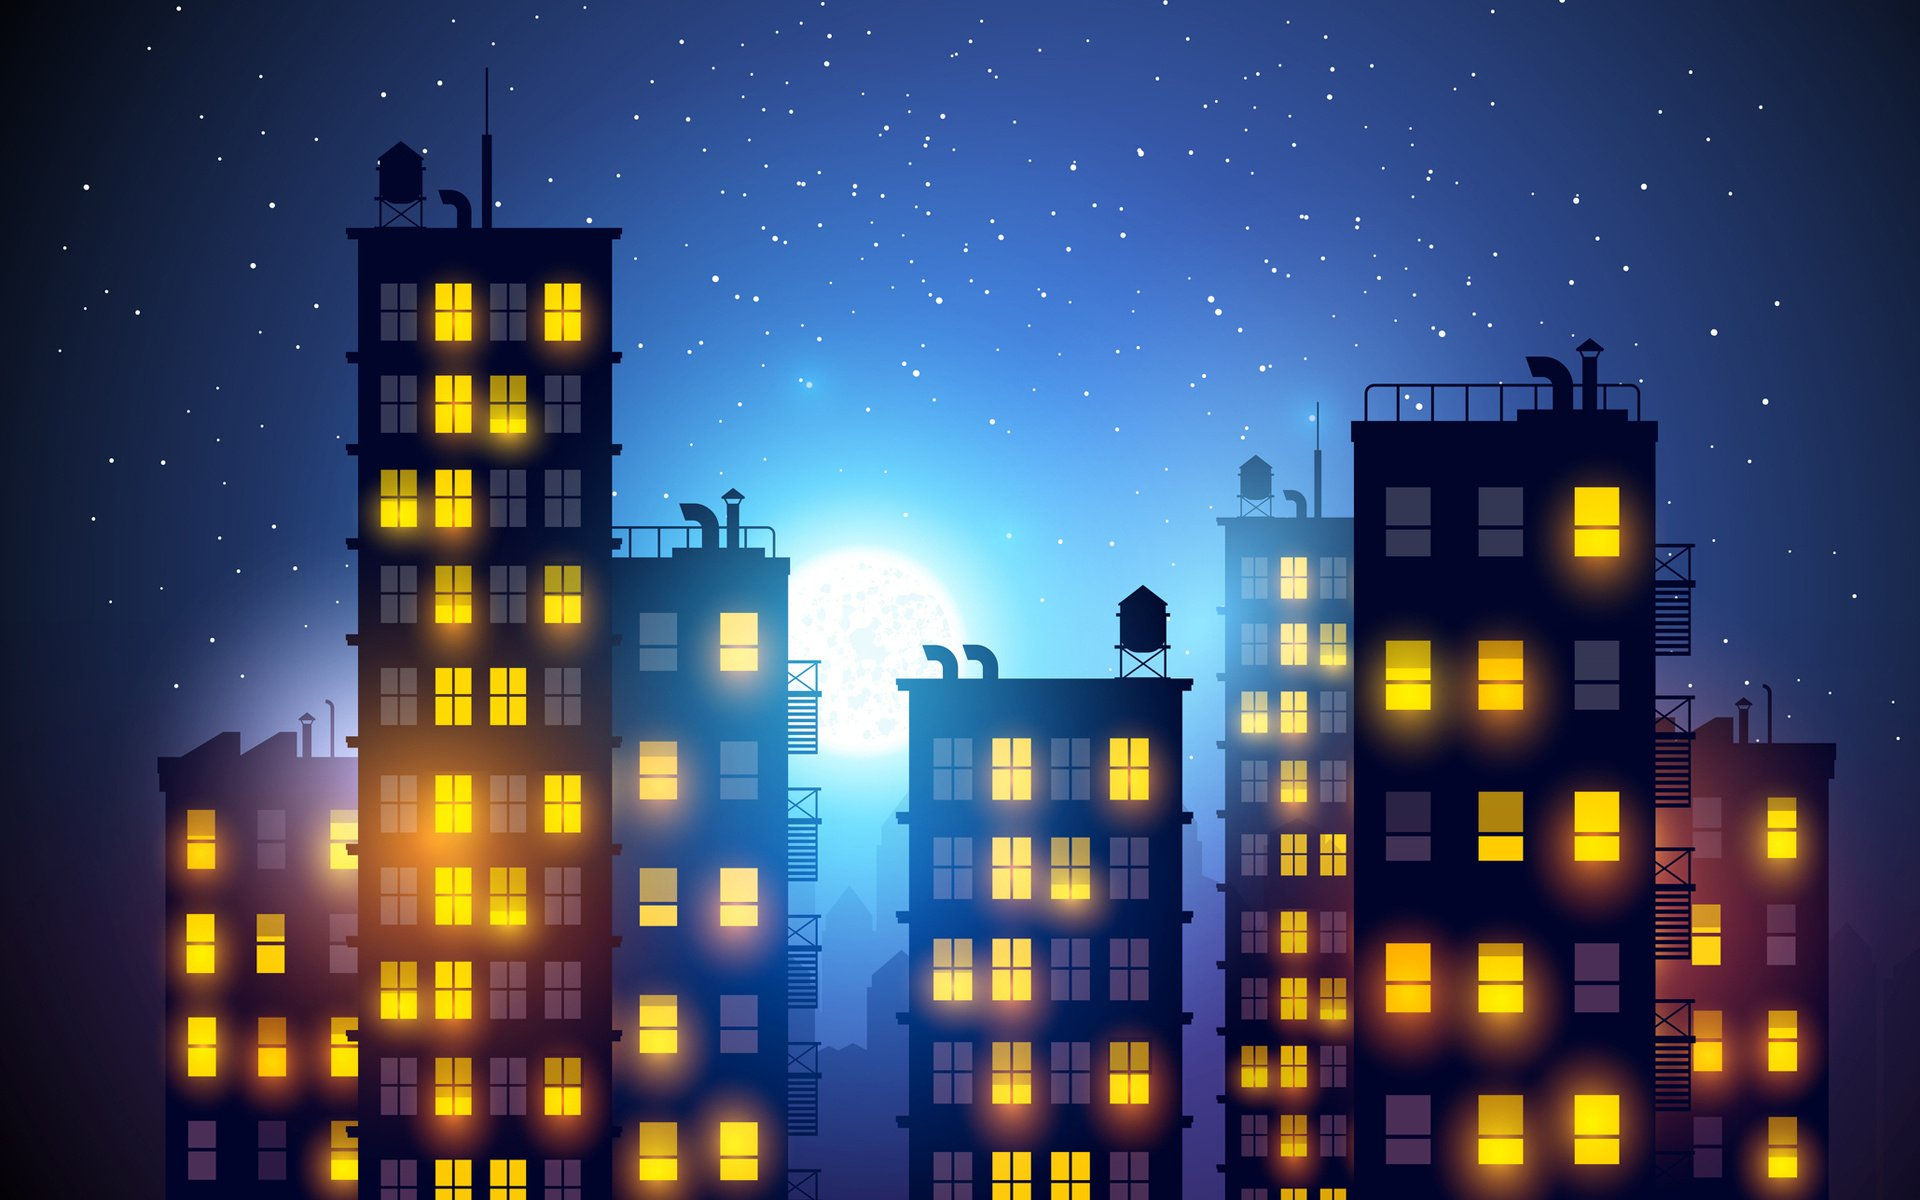 City light night drawing romance artwork building vector ...